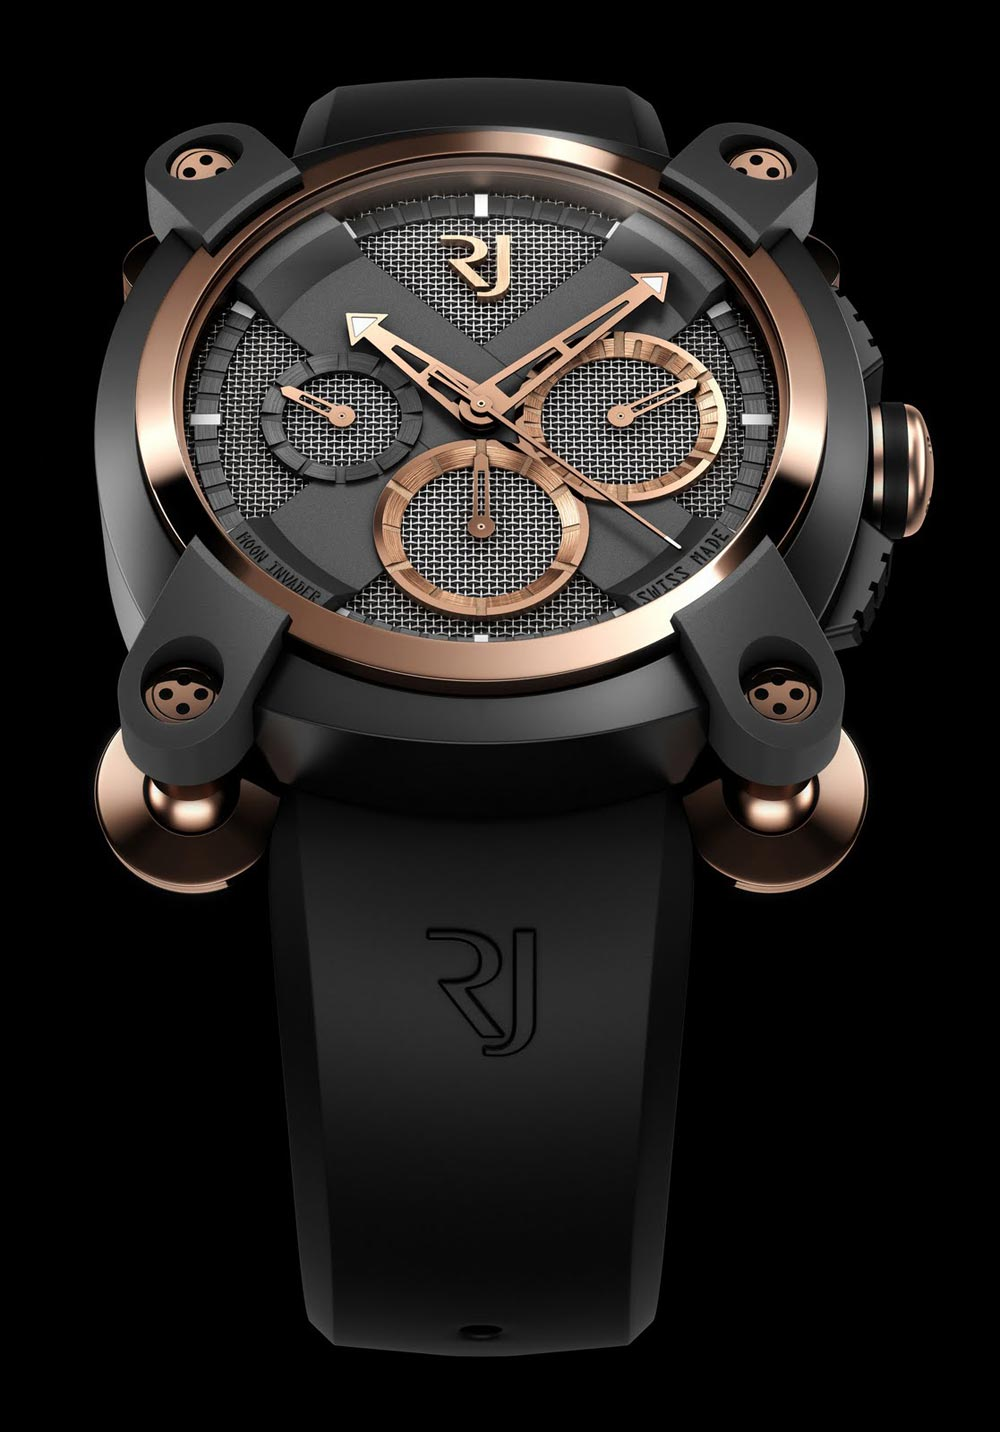 Moon Invader Chronographe Emminence Grise